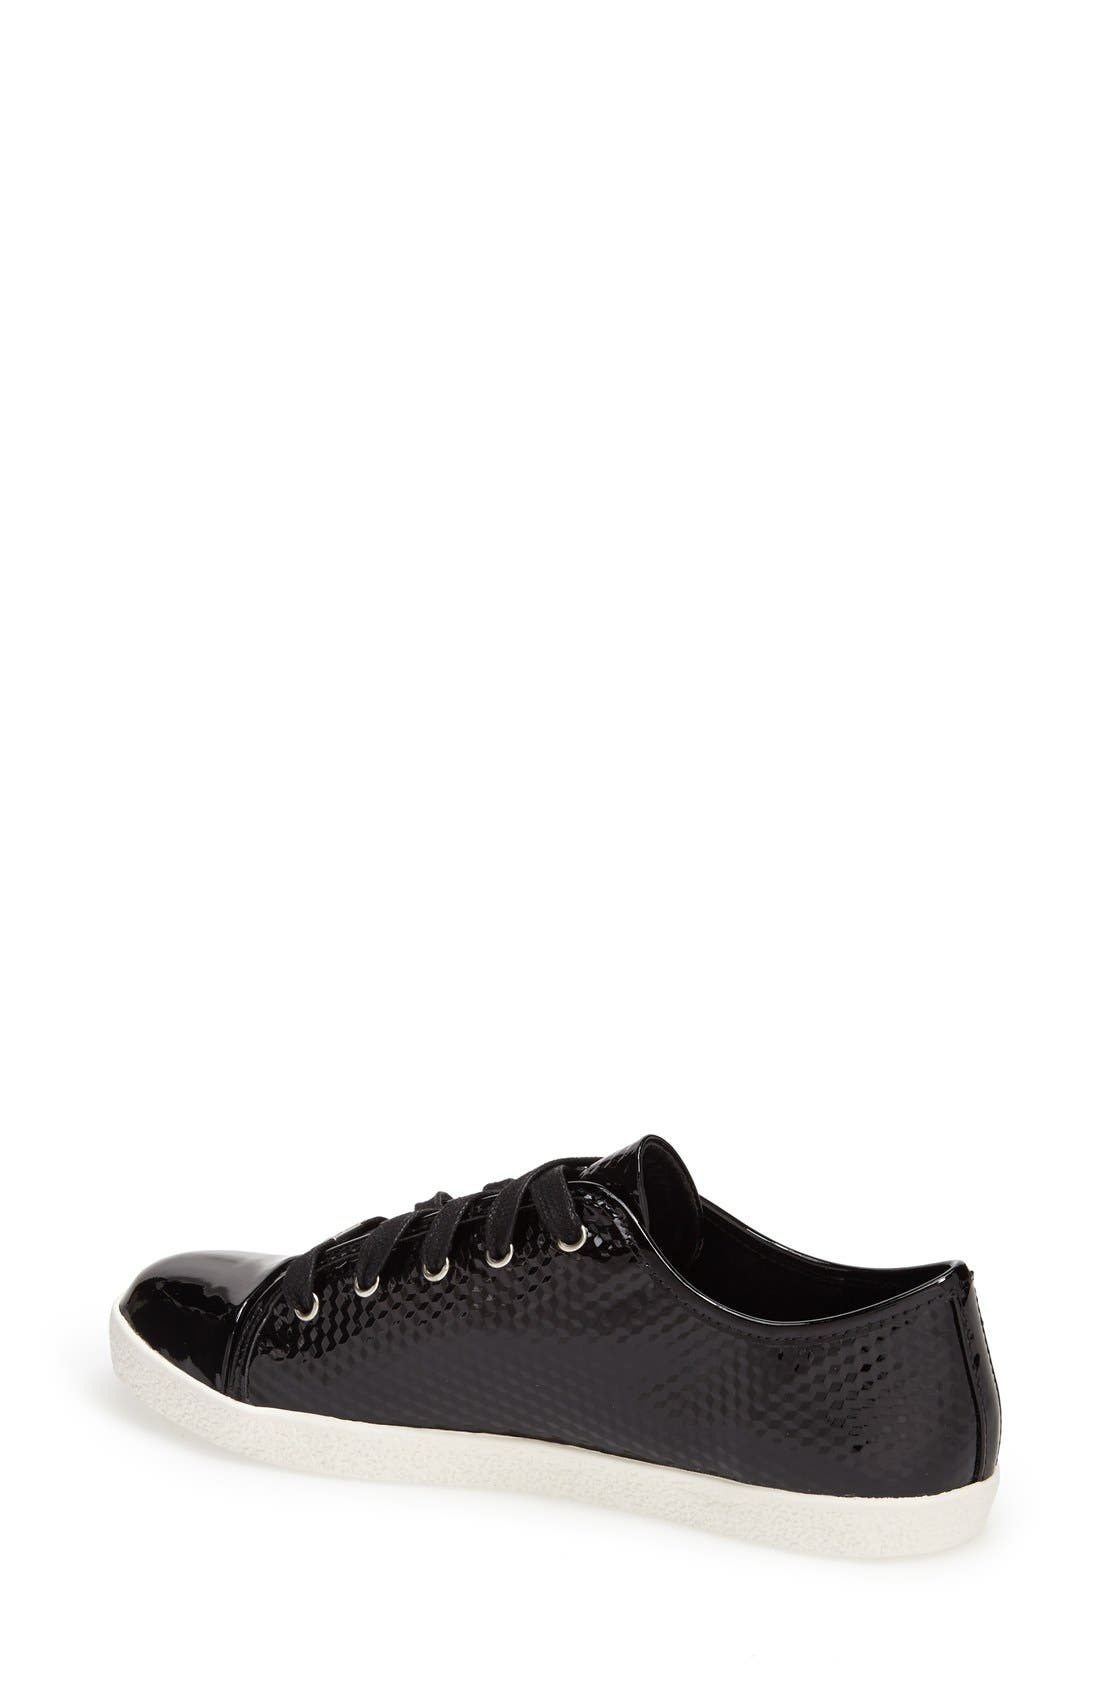 Alternate Image 2  - Delman 'Magie' Low Top Sneaker (Women)